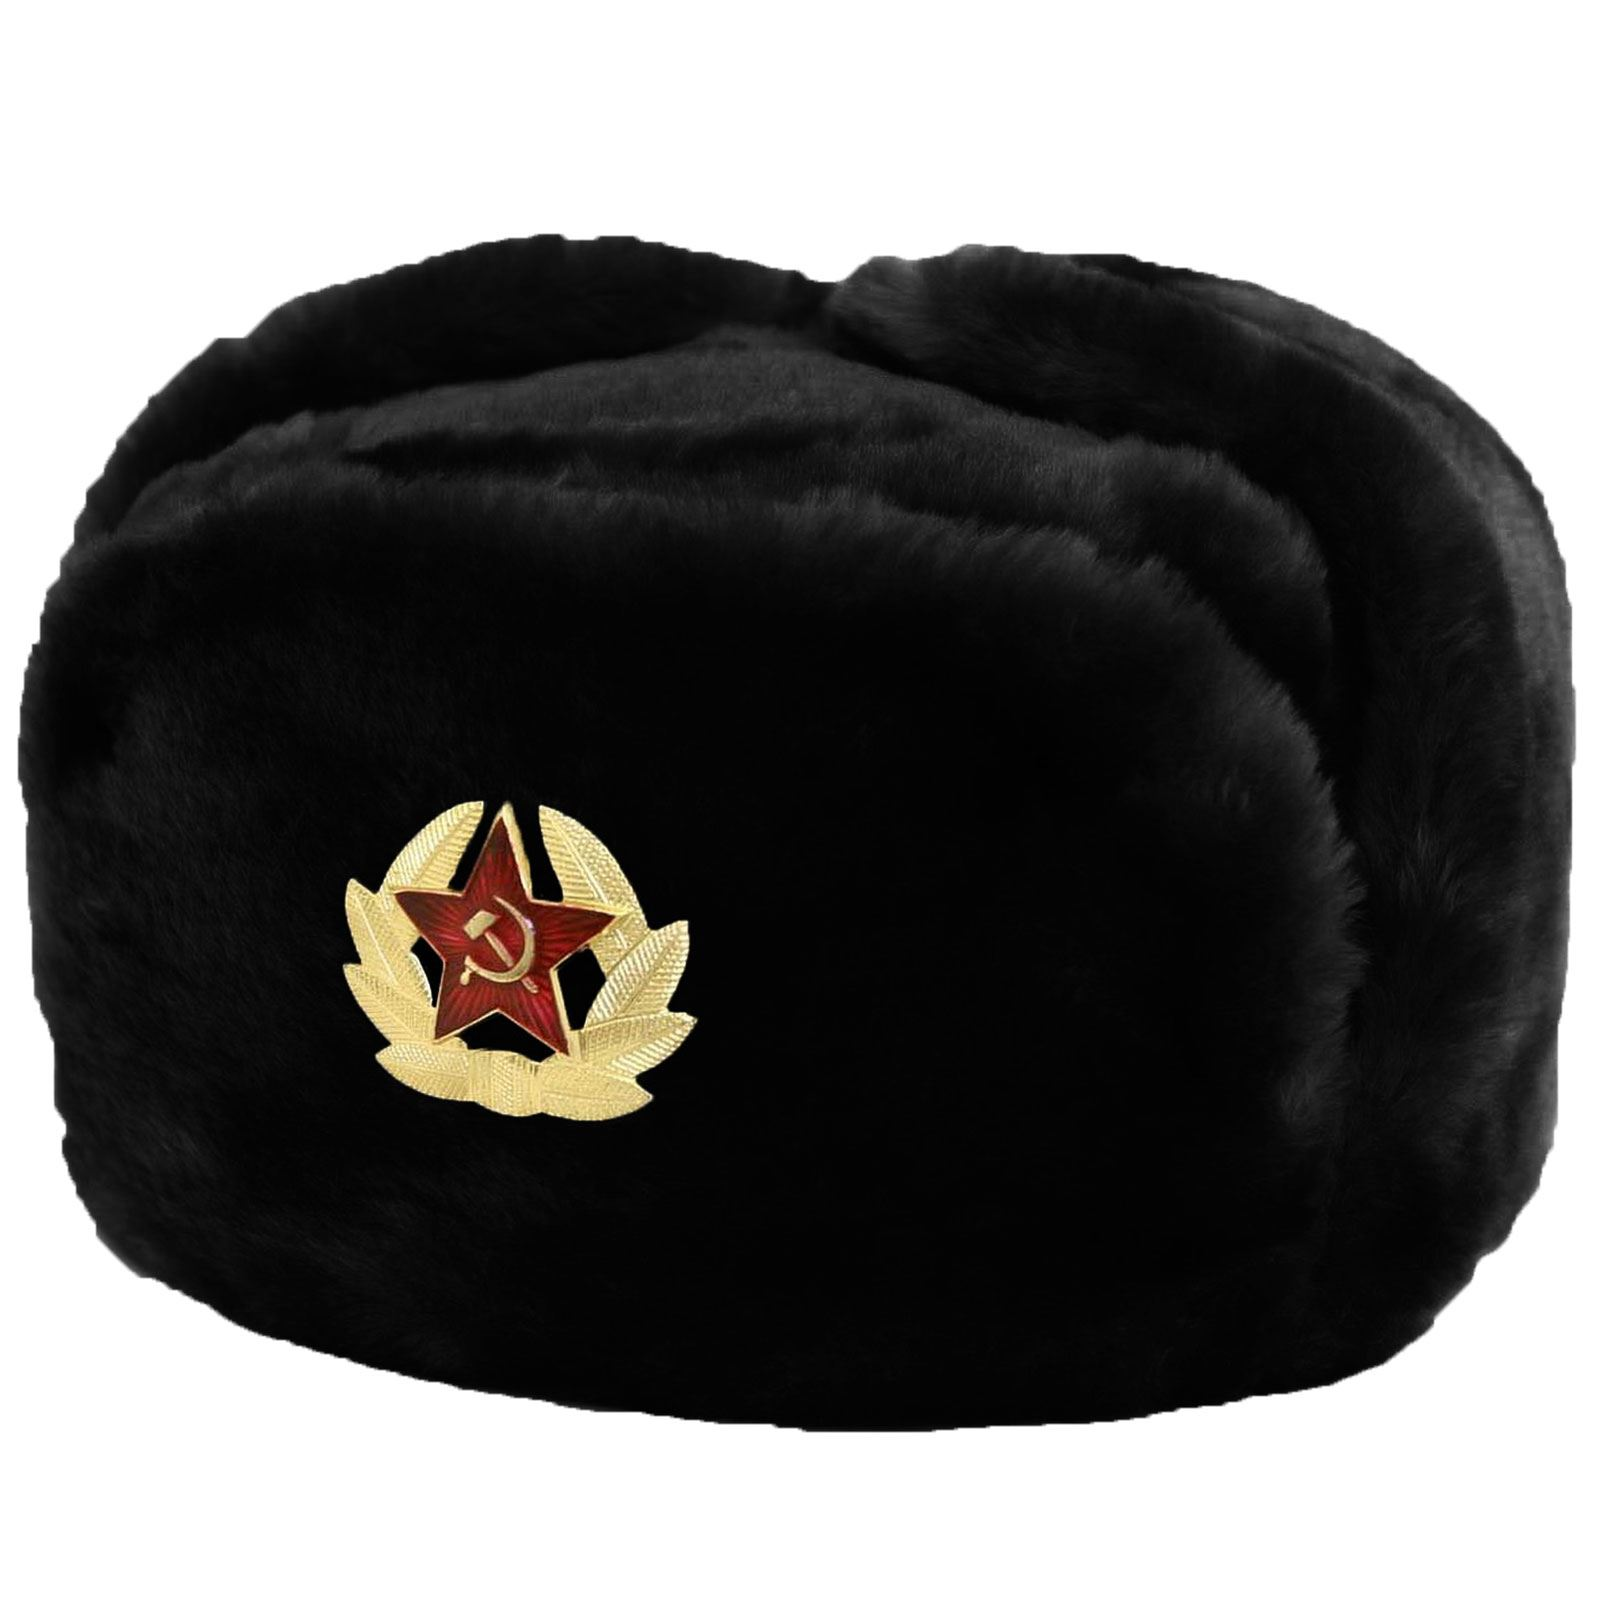 Genuine Military Naval winter uniform Russian fur hat - sheepskin archivesnapug.cf of natural highest quality mouton sheepskin and natural leather. (some other stores offer same style hats made of artificial materials instead.